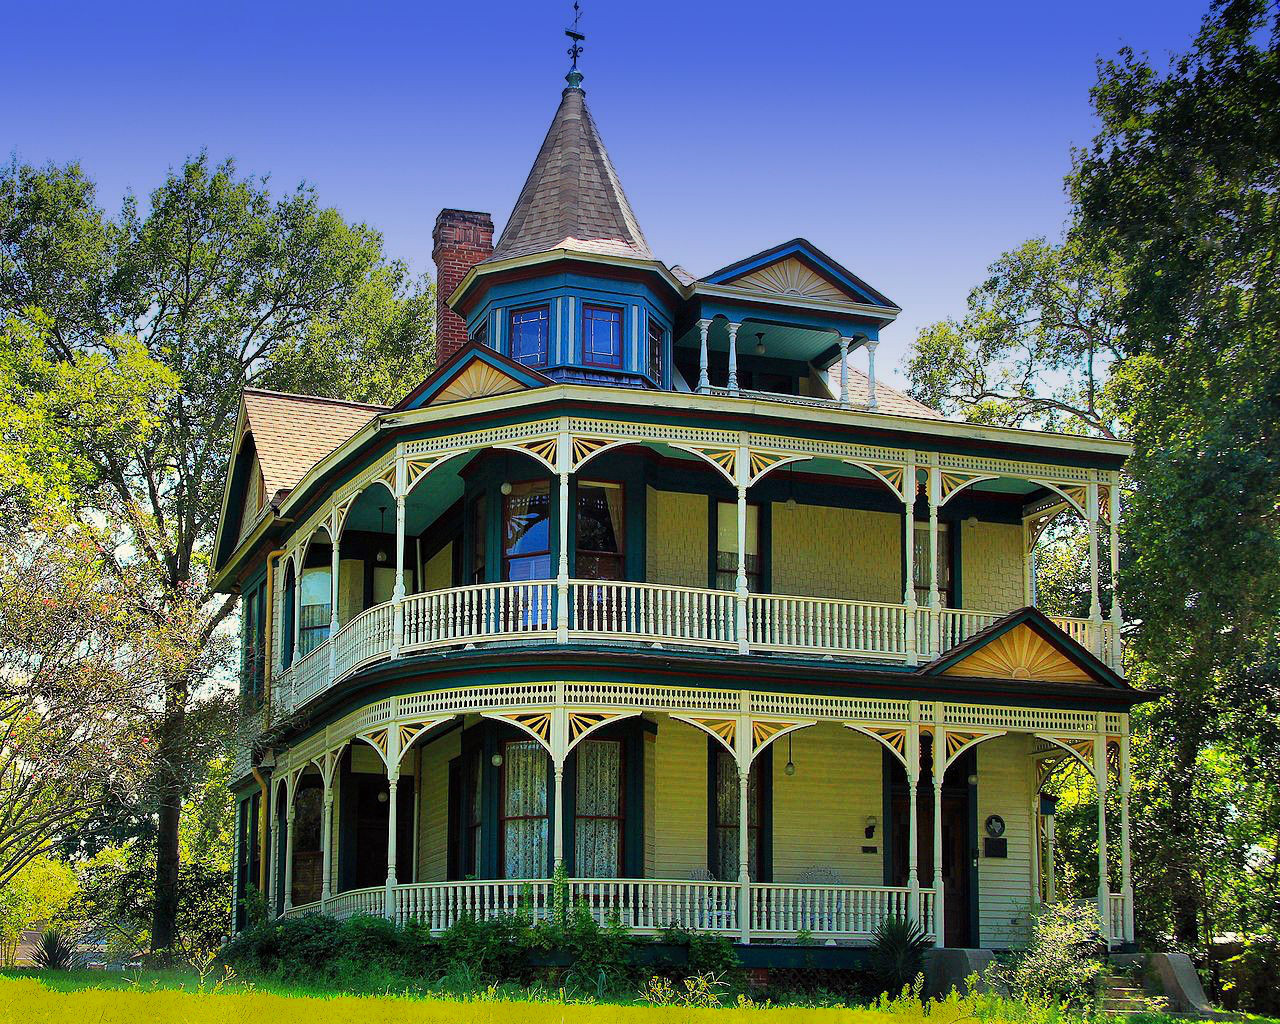 F. W. Schuerenberg House in Brenham, Texas. Credit Larry D. Moore